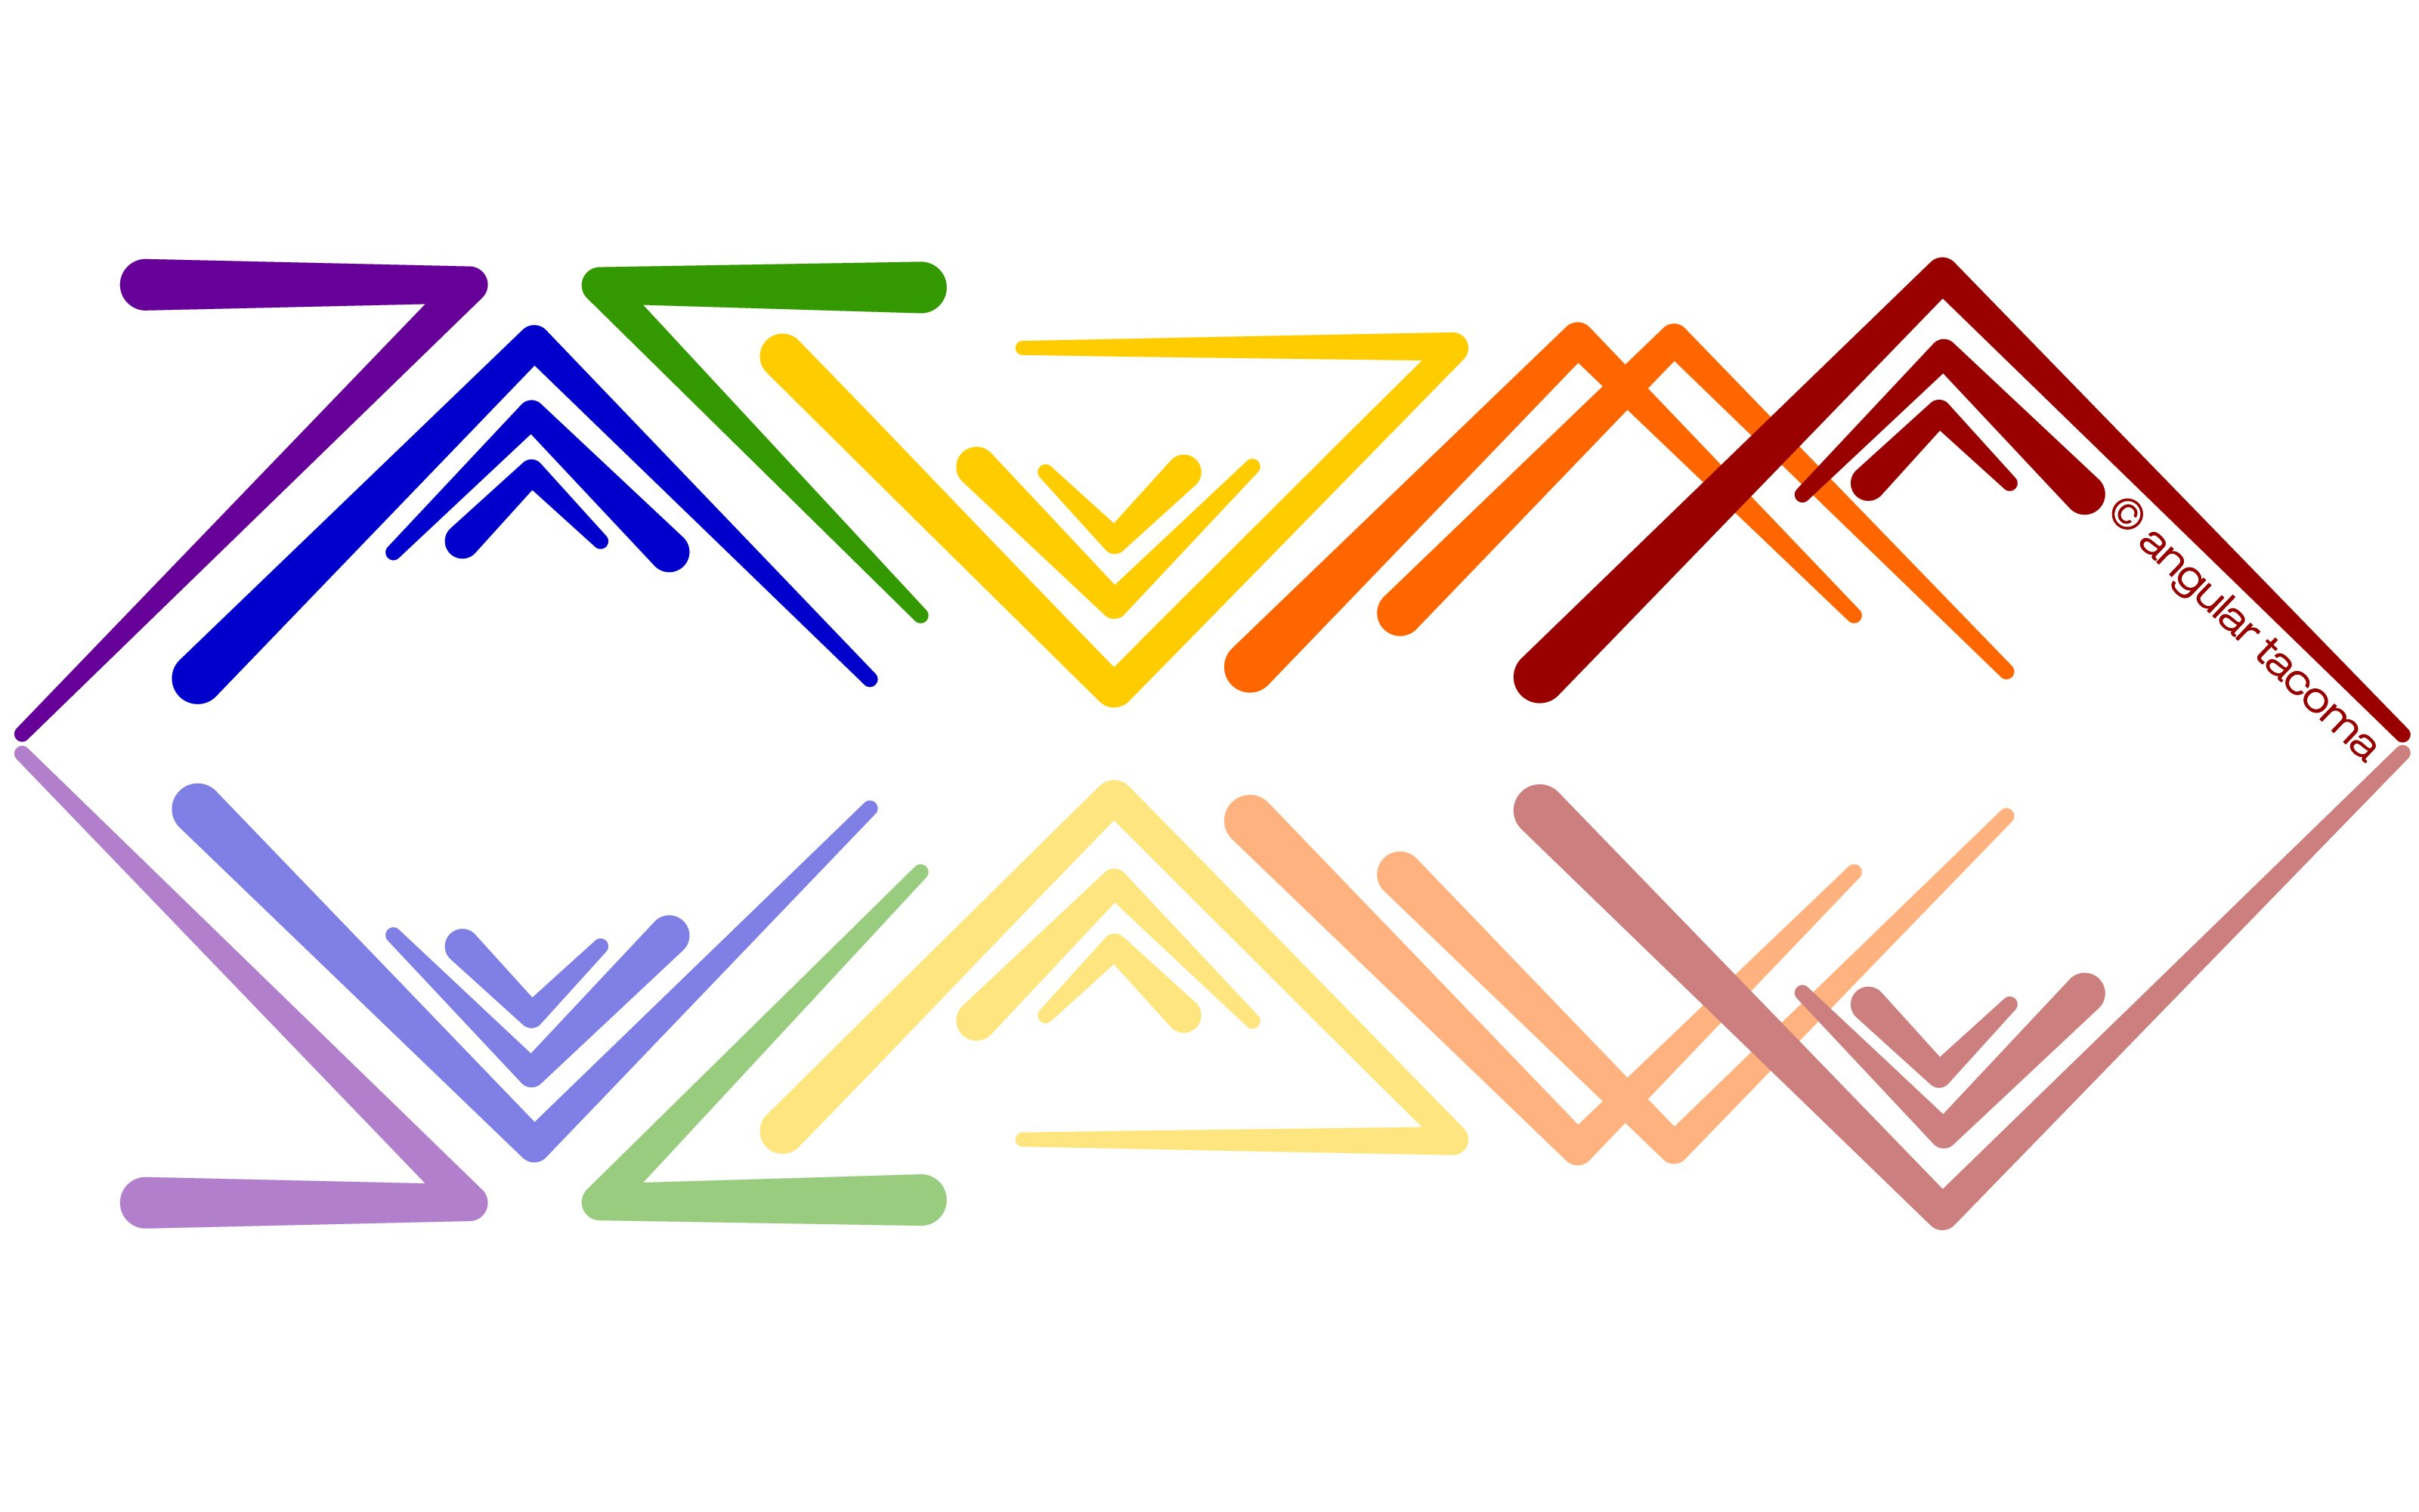 Rainbow Reflection version of Angular Tacoma wordart